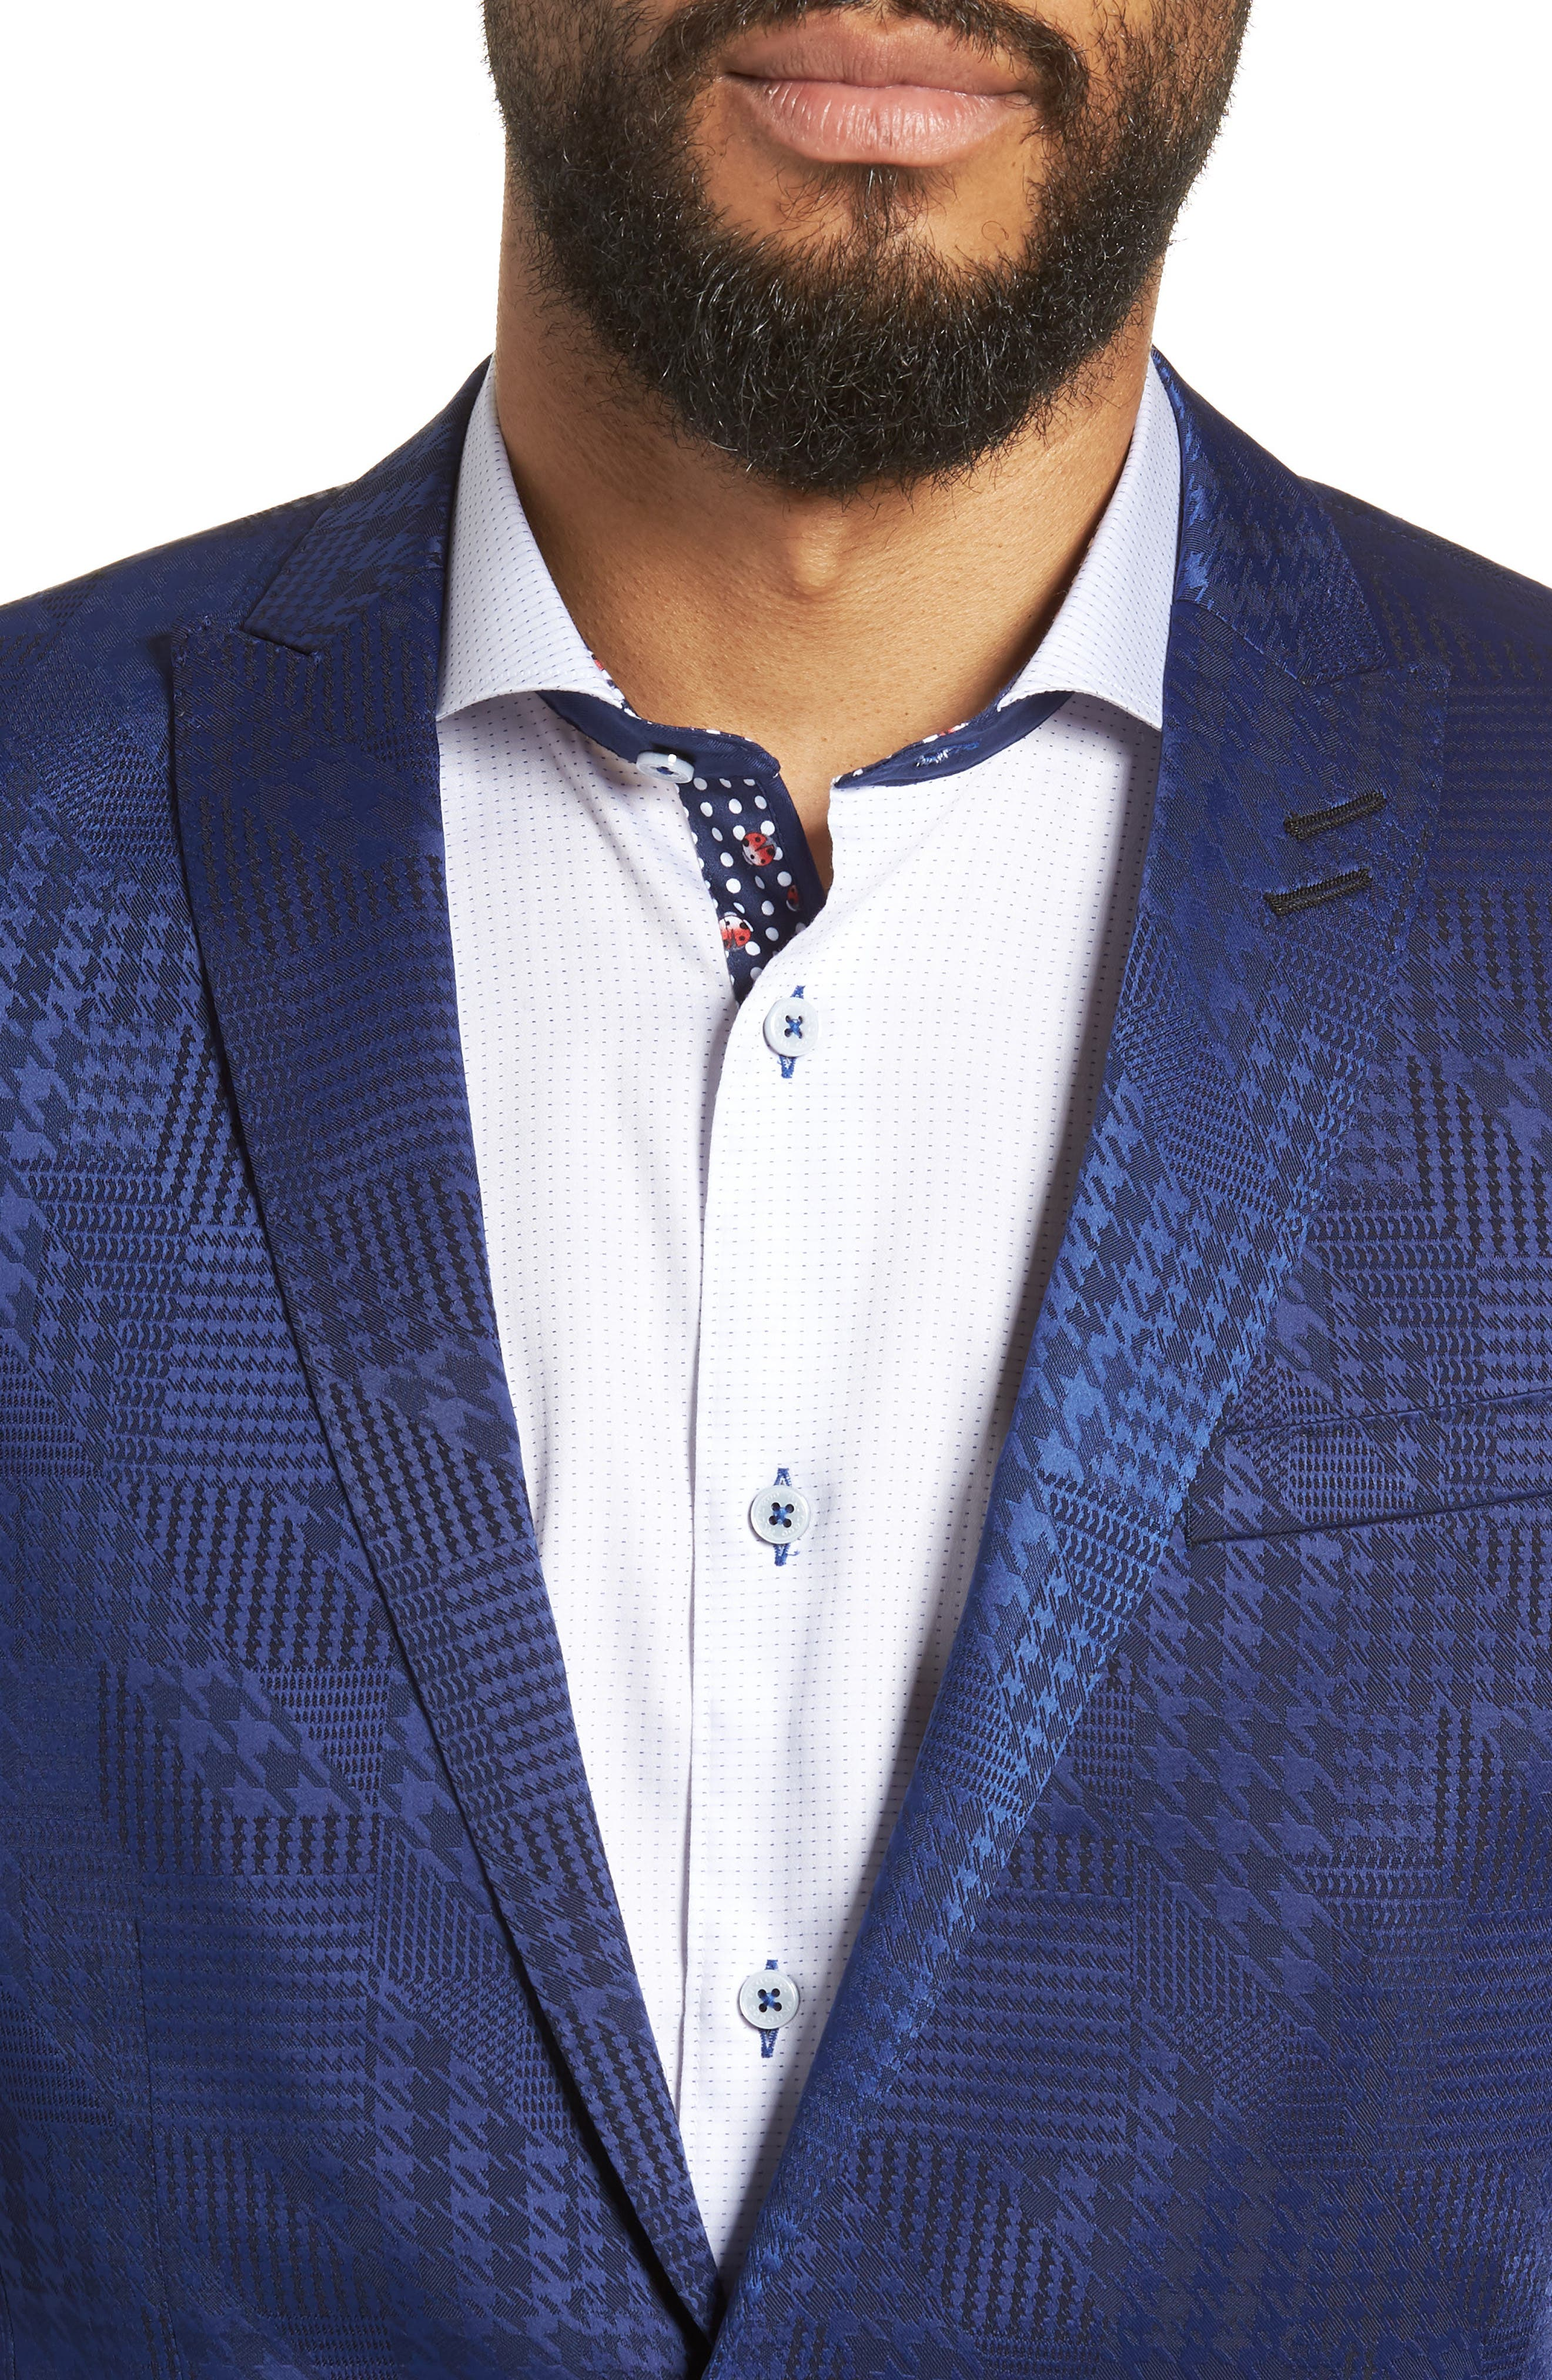 Descartes Patch Houndstooth Sport Coat,                             Alternate thumbnail 4, color,                             420